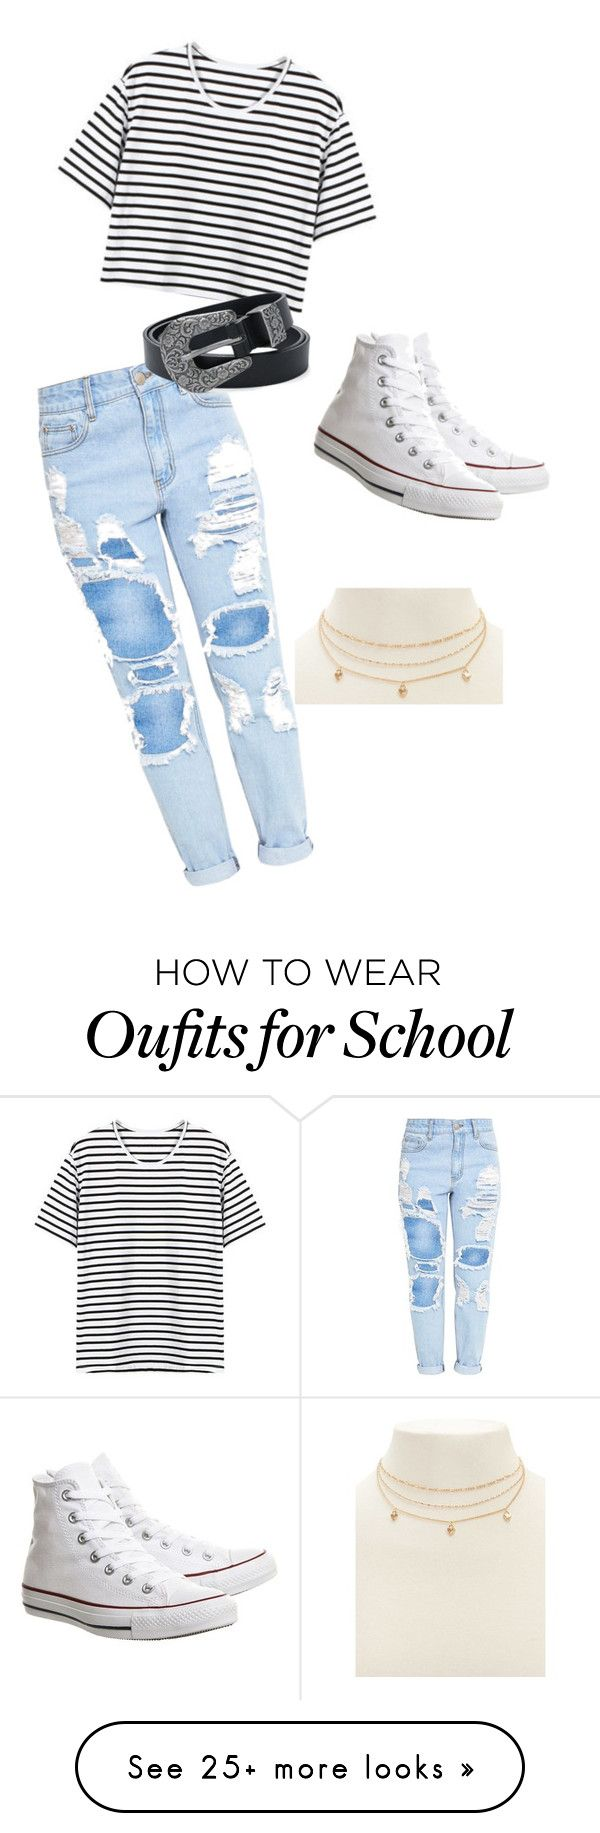 """School casual"" by caitlynmsteiner on Polyvore featuring Converse and Forever 21"